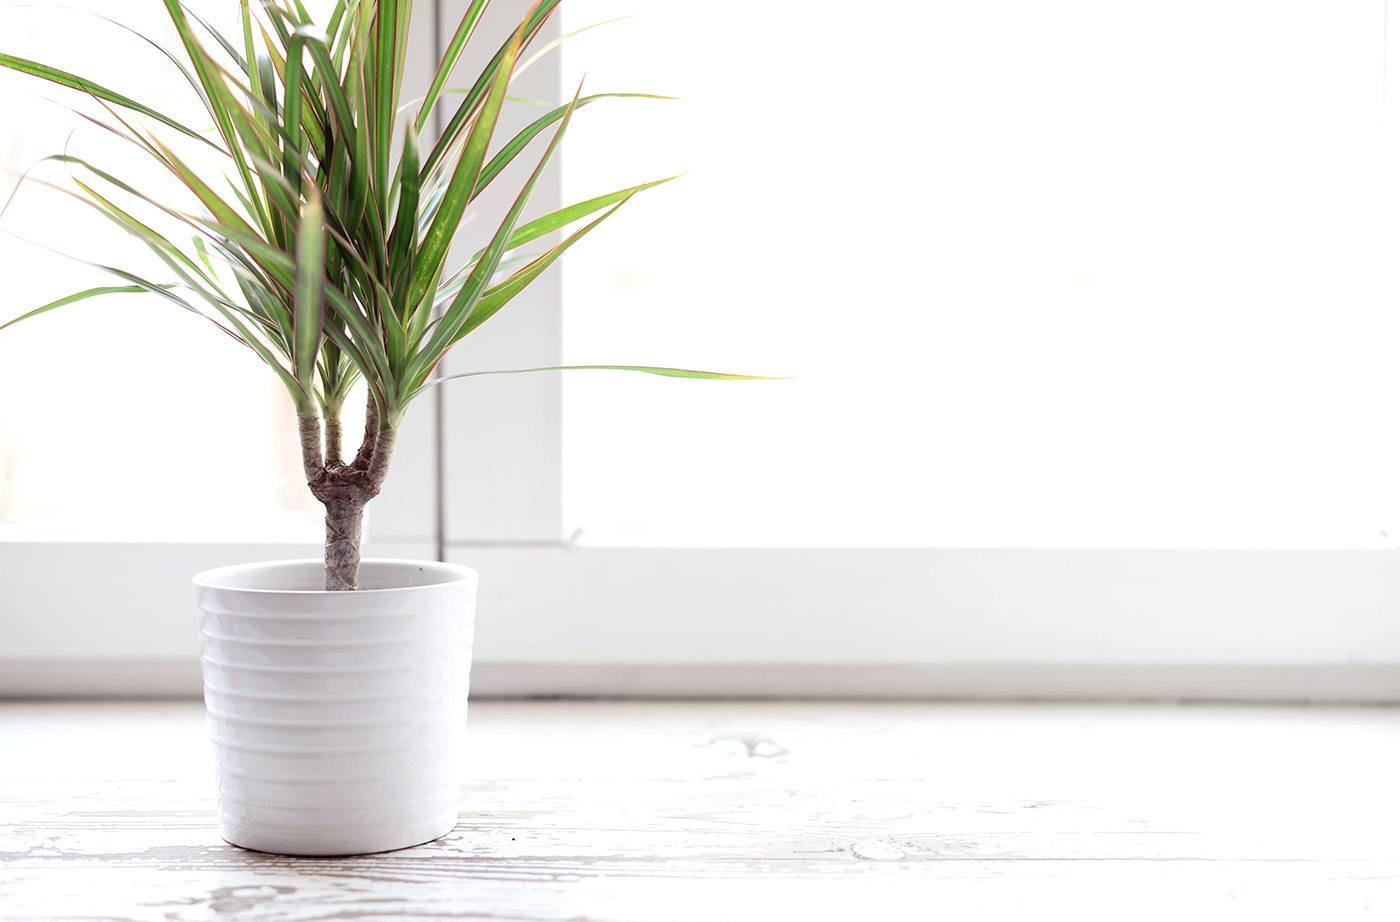 Thumbnail for Green thumb 101: These easy houseplants are the hardest to accidentally kill